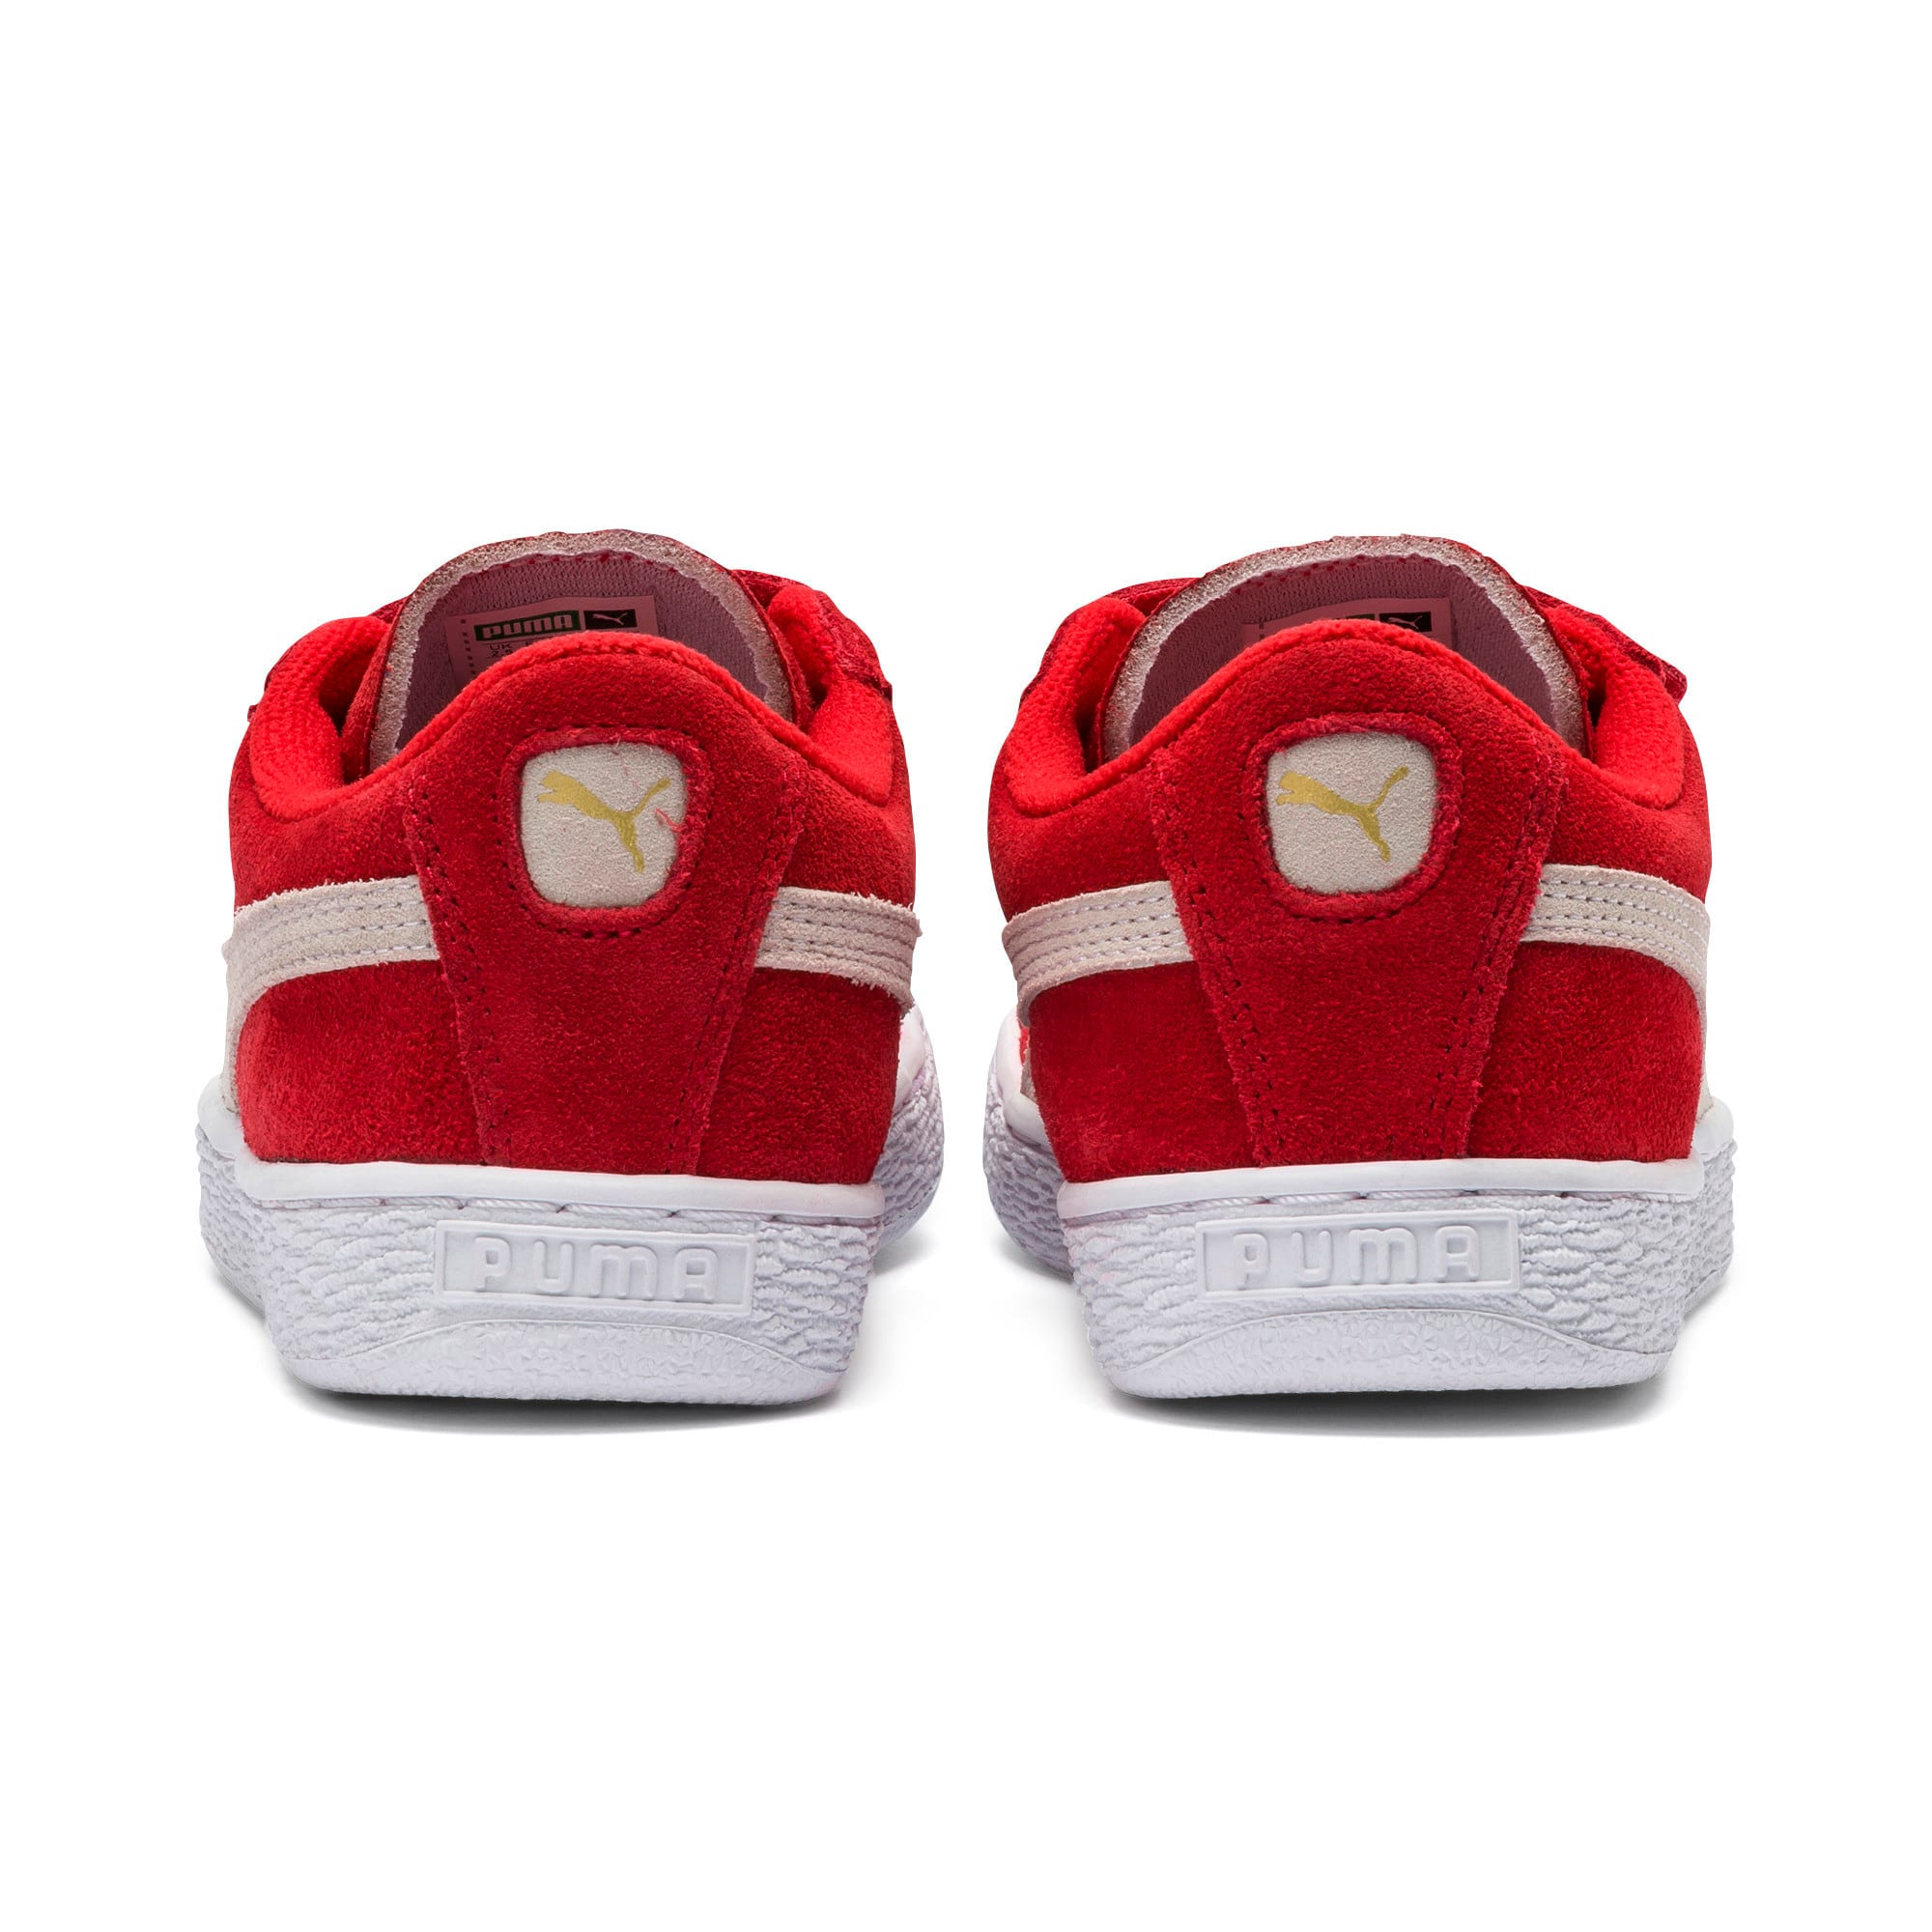 Thumbnail 3 of Suede Kids' Trainers, High Risk Red-Puma White, medium